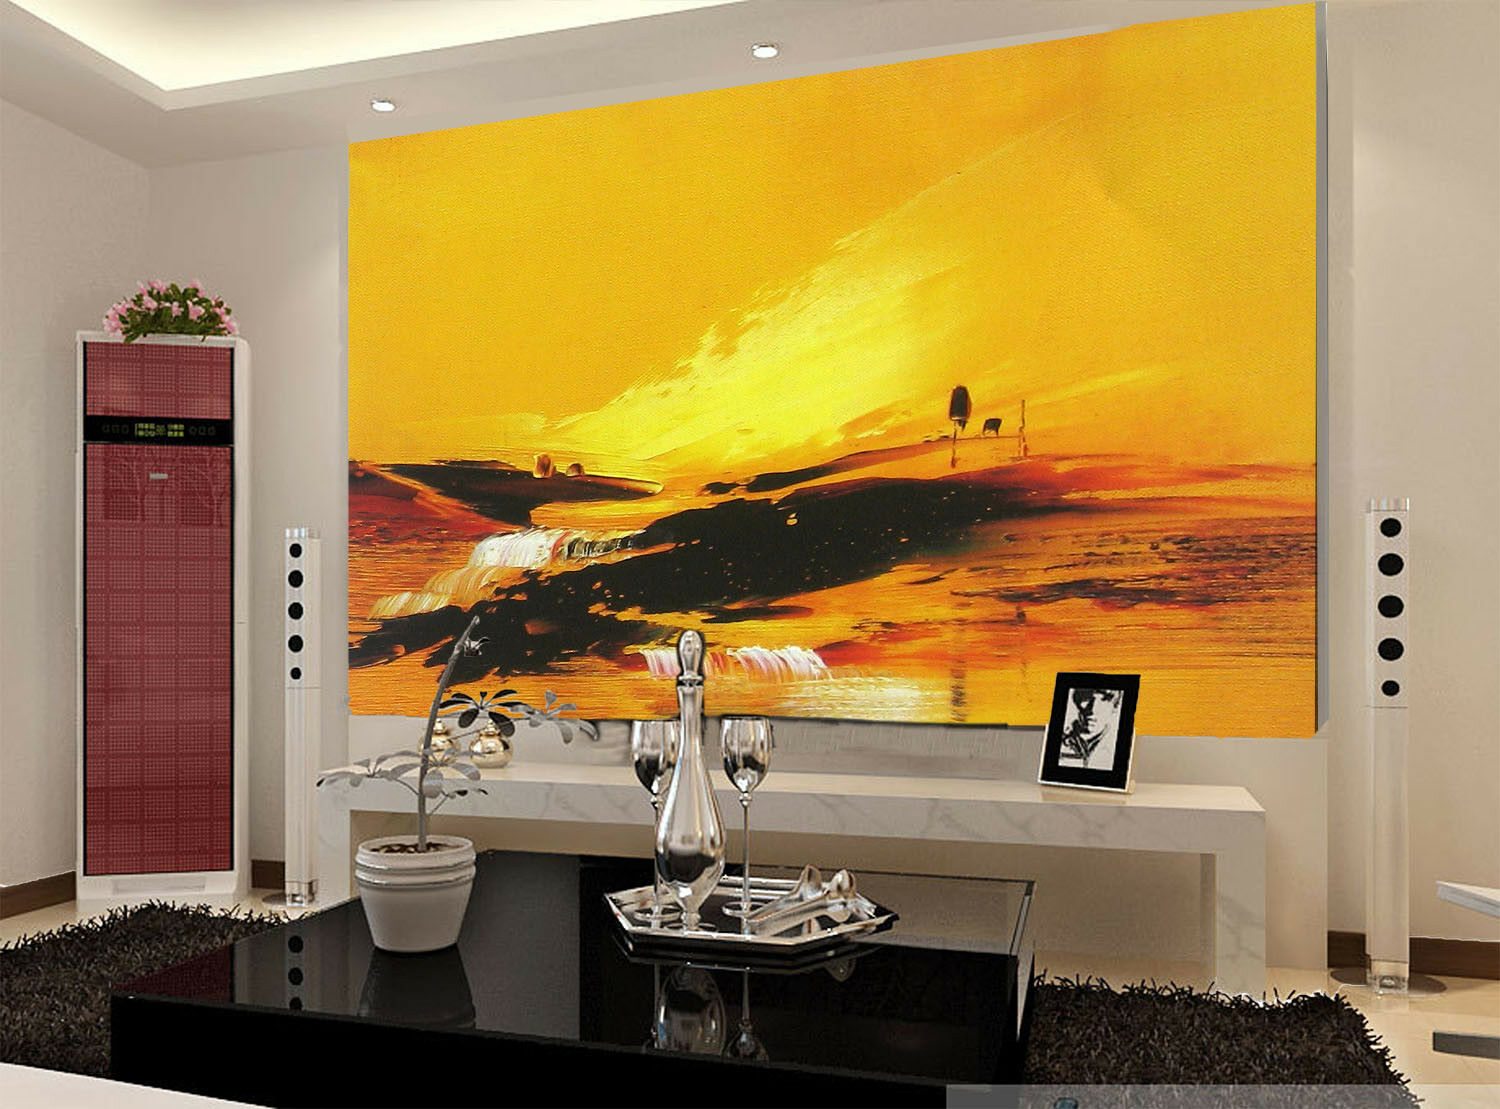 3D Sunrise Paint 724 Wallpaper Mural Paper Wall Print Wallpaper Murals UK Lemon